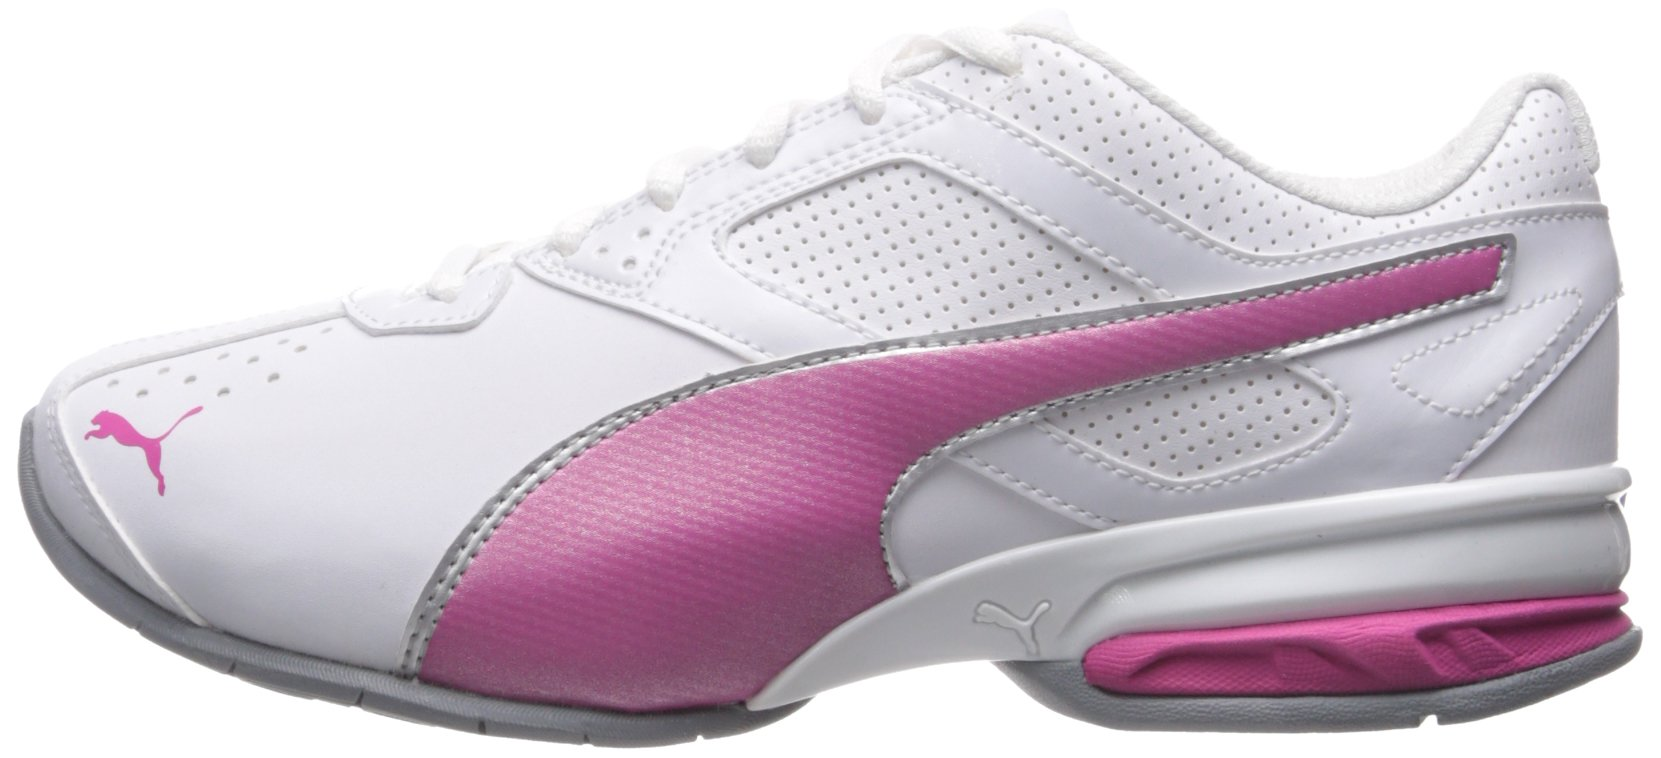 PUMA Women's Tazon 6 WN's fm Cross-Trainer Shoe, White/Fuchsia Purple Silver, 6.5 M US by PUMA (Image #5)